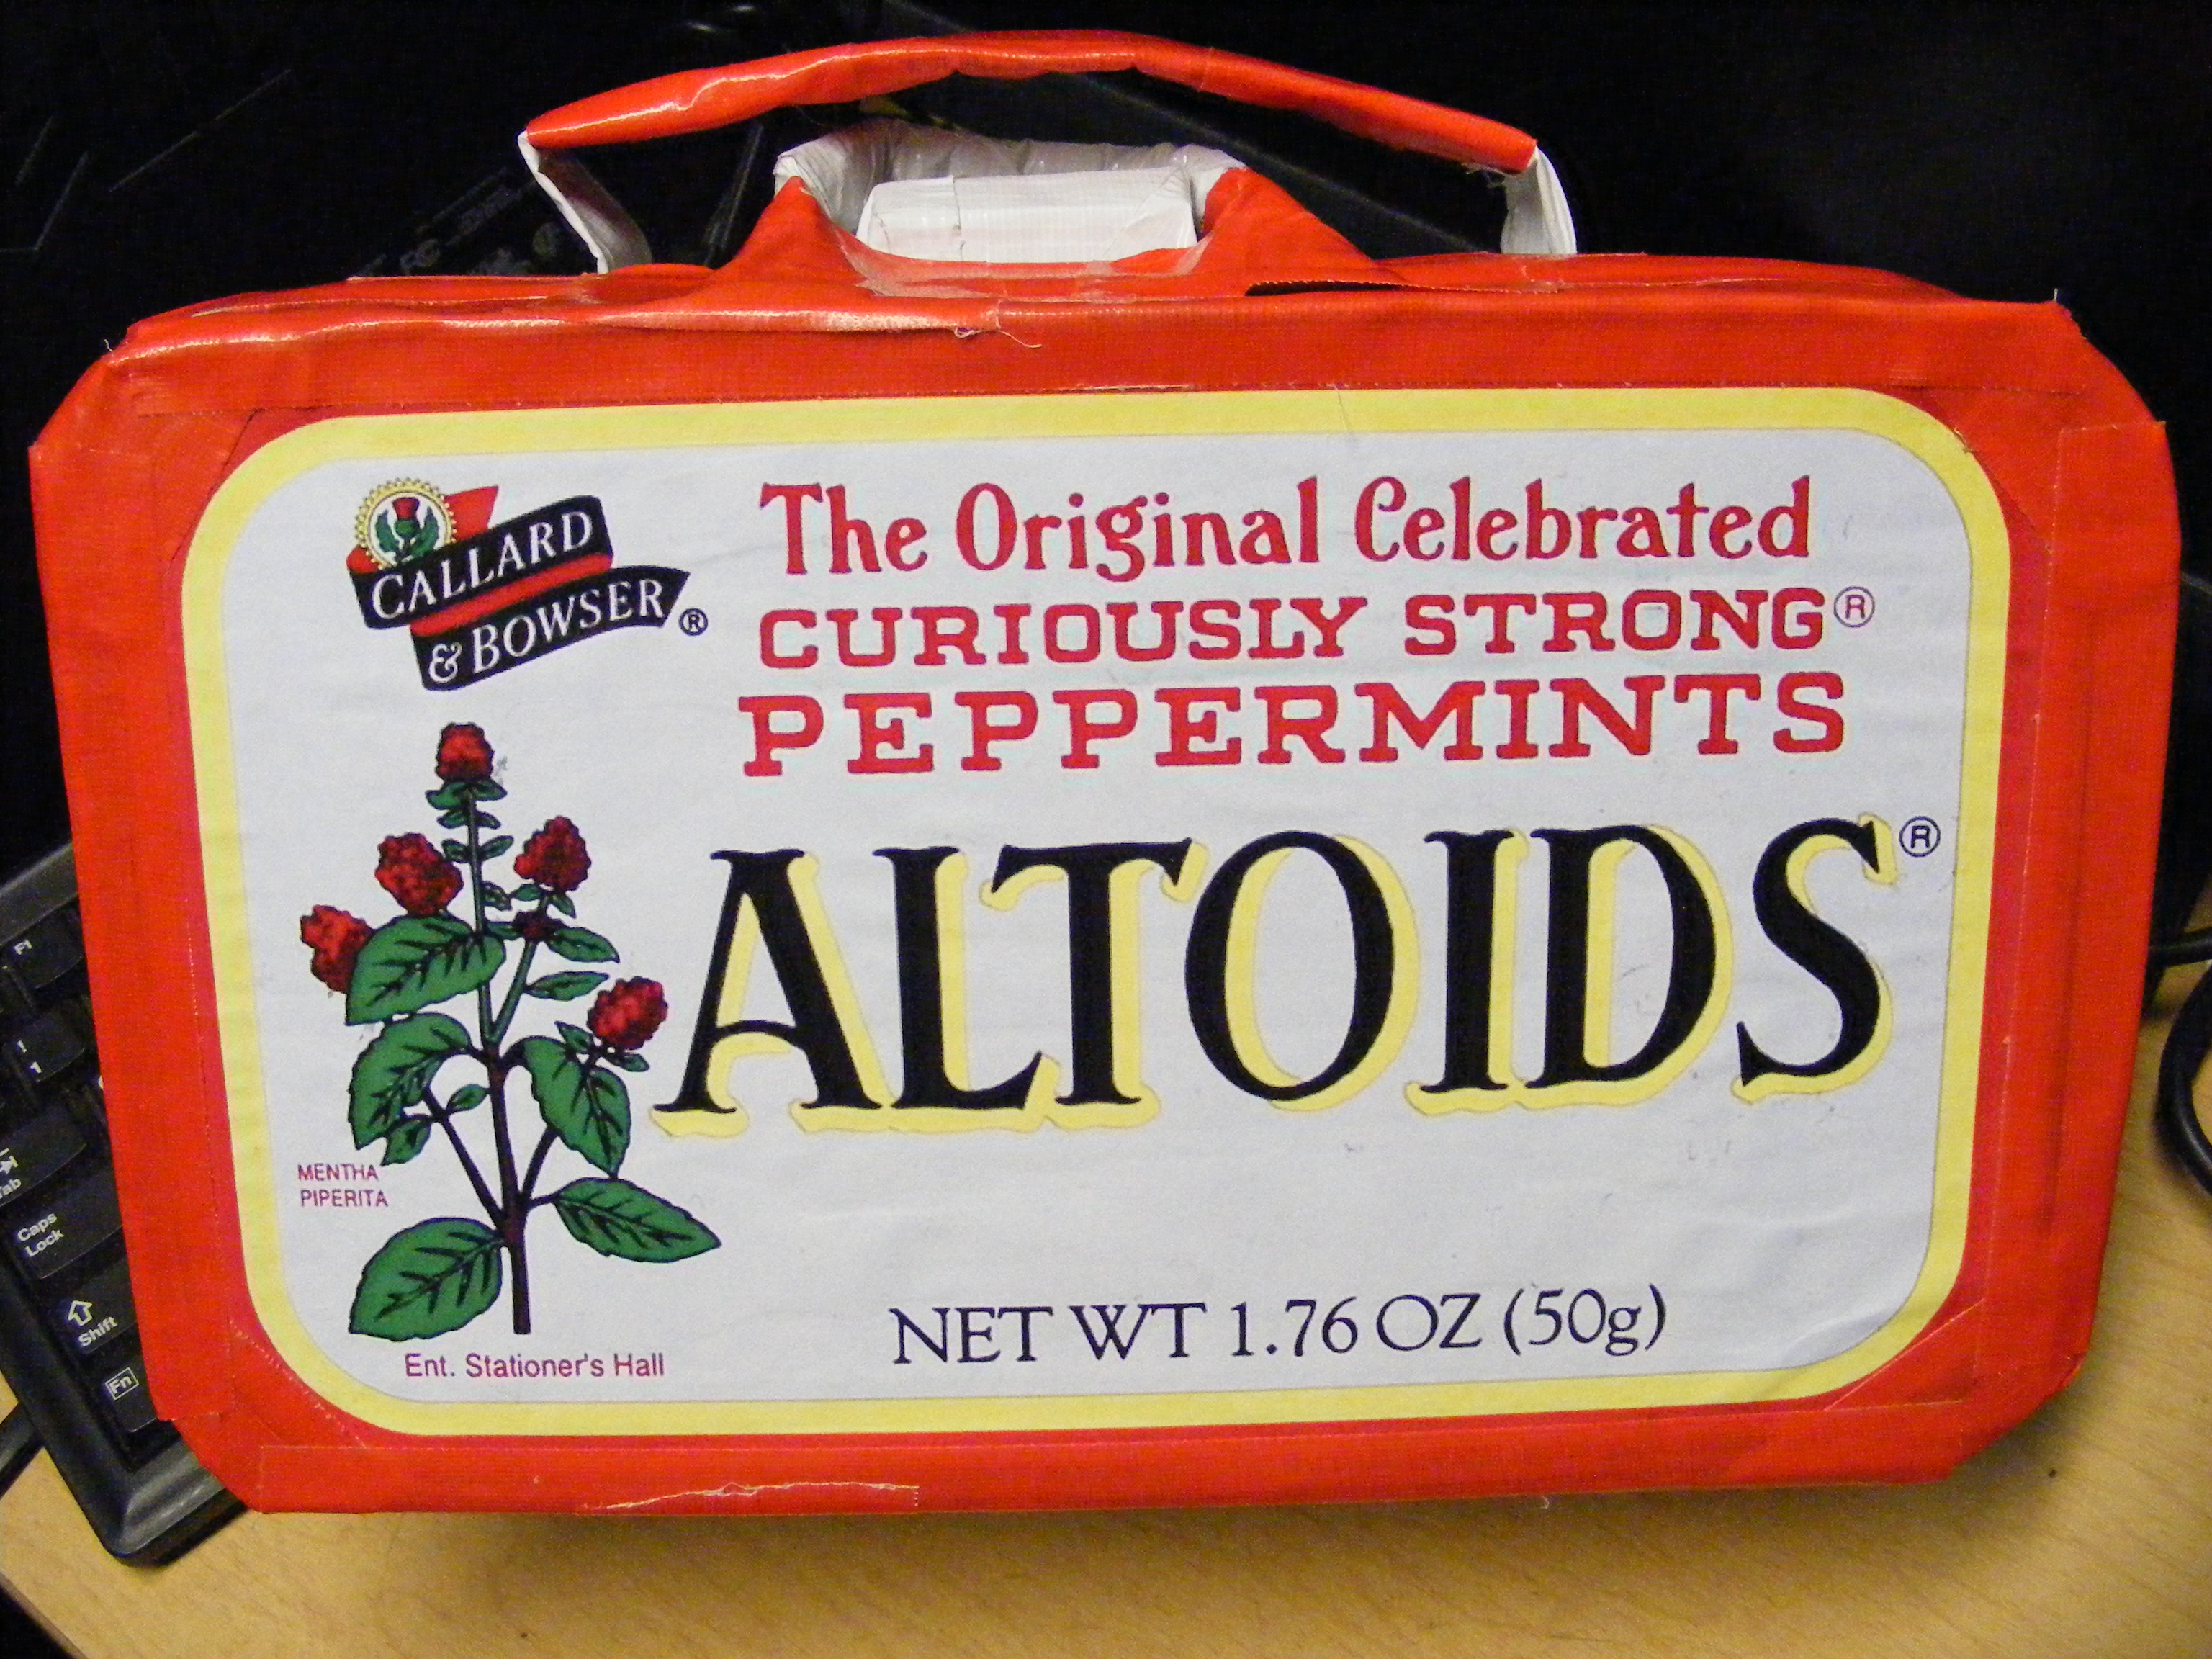 bumpus' Giant Altoids Subway turkey sammich holder (Giant Altoids Tin Lunchbox)